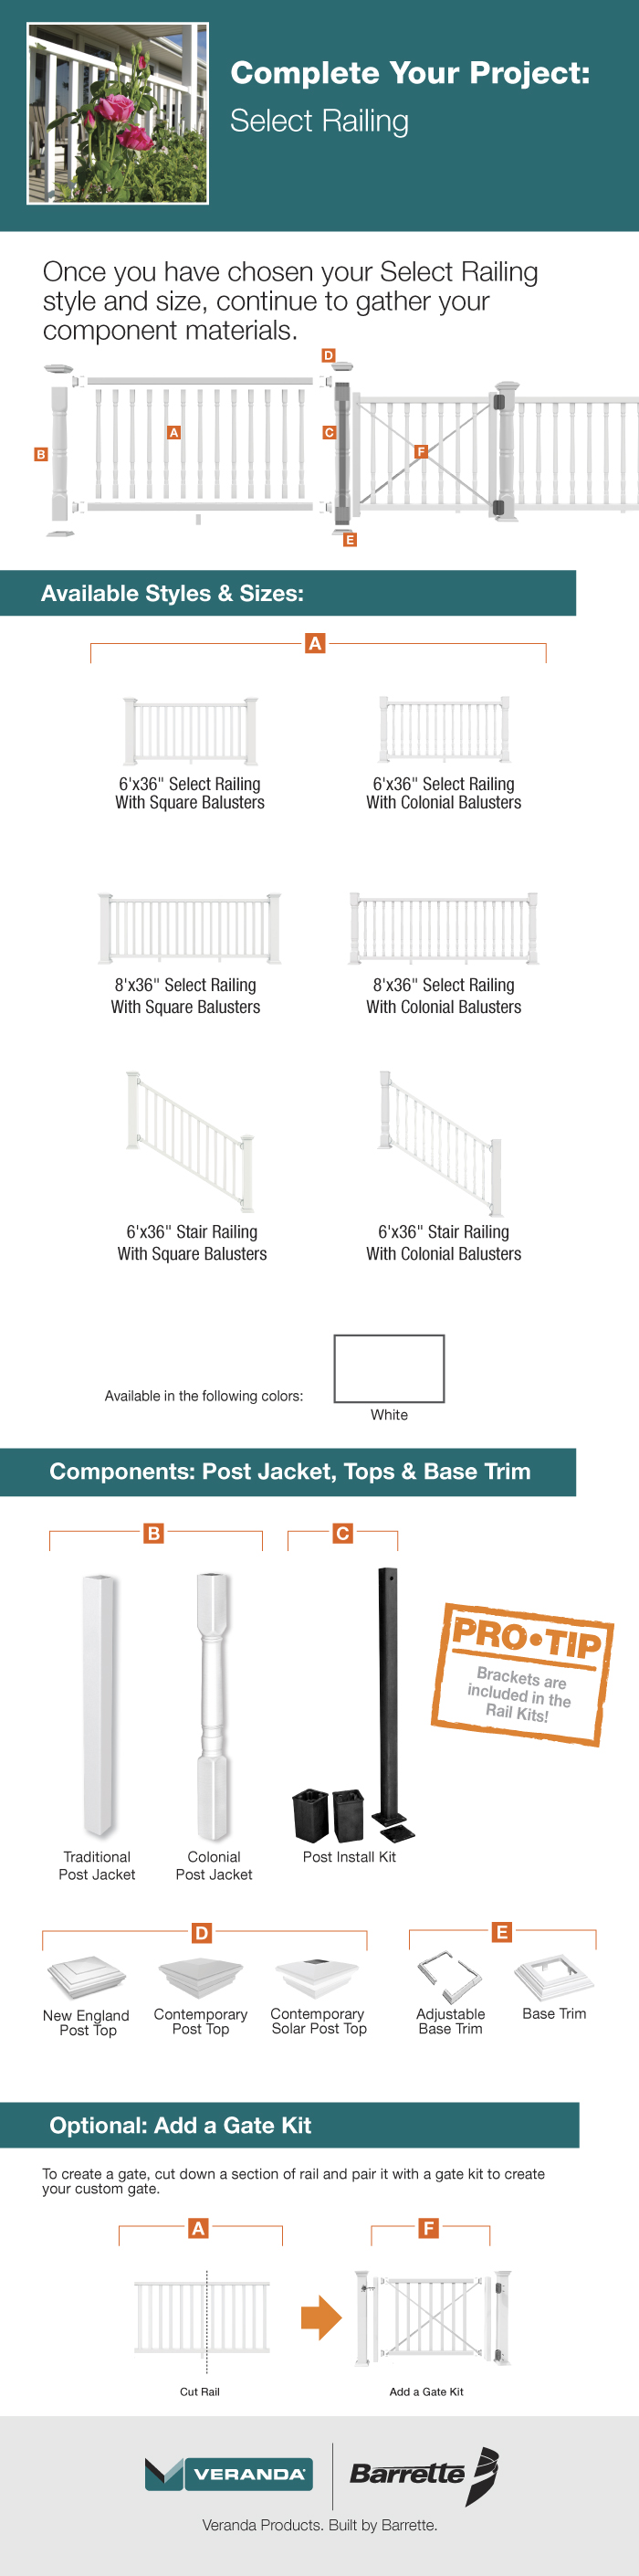 Veranda select rail buying guide